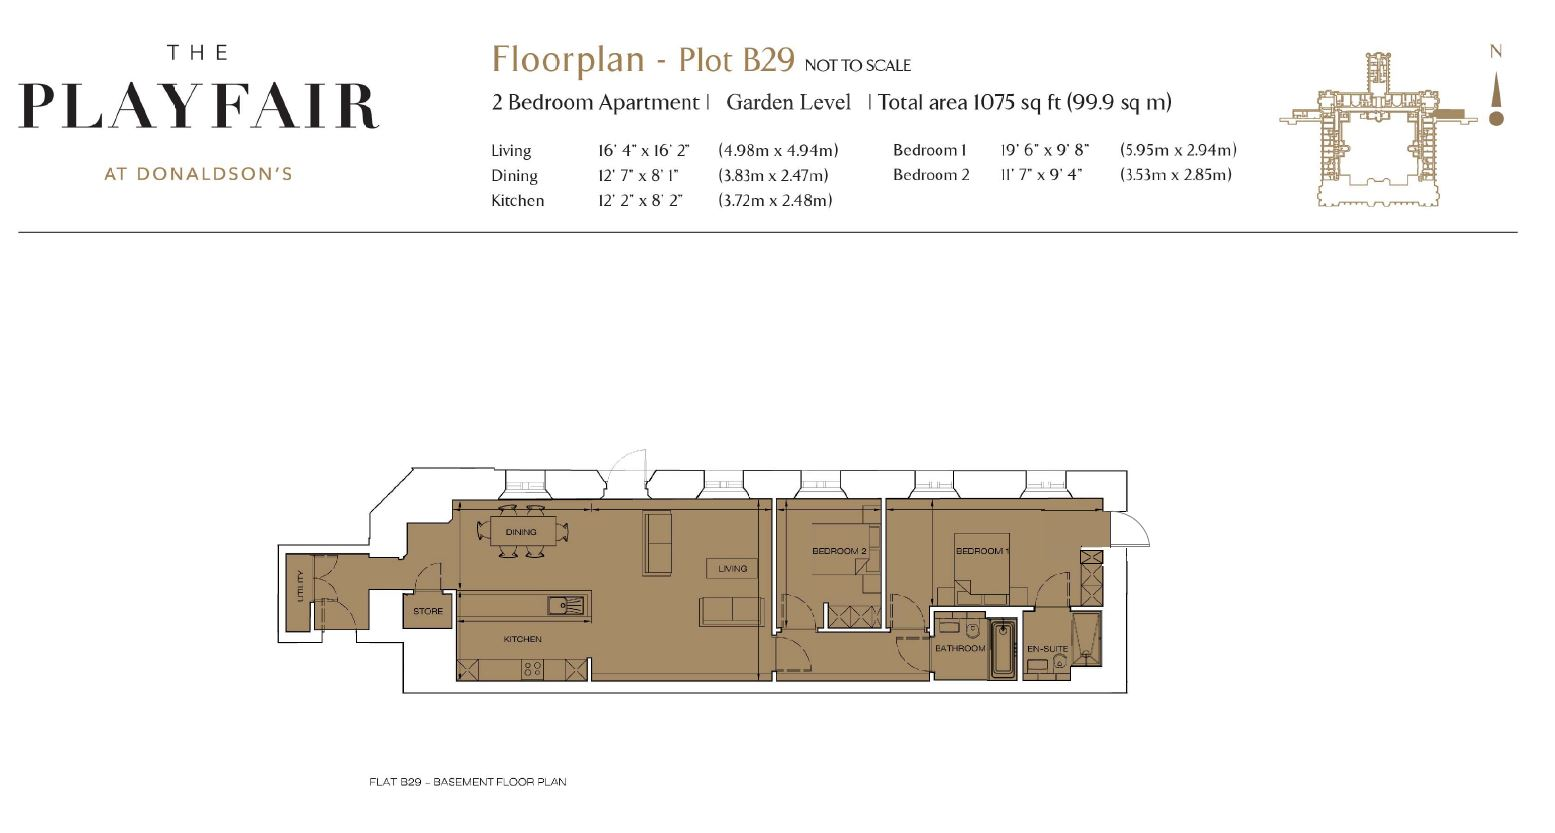 Floorplans for B29 - Donaldson's, West Coates, Edinburgh, EH12